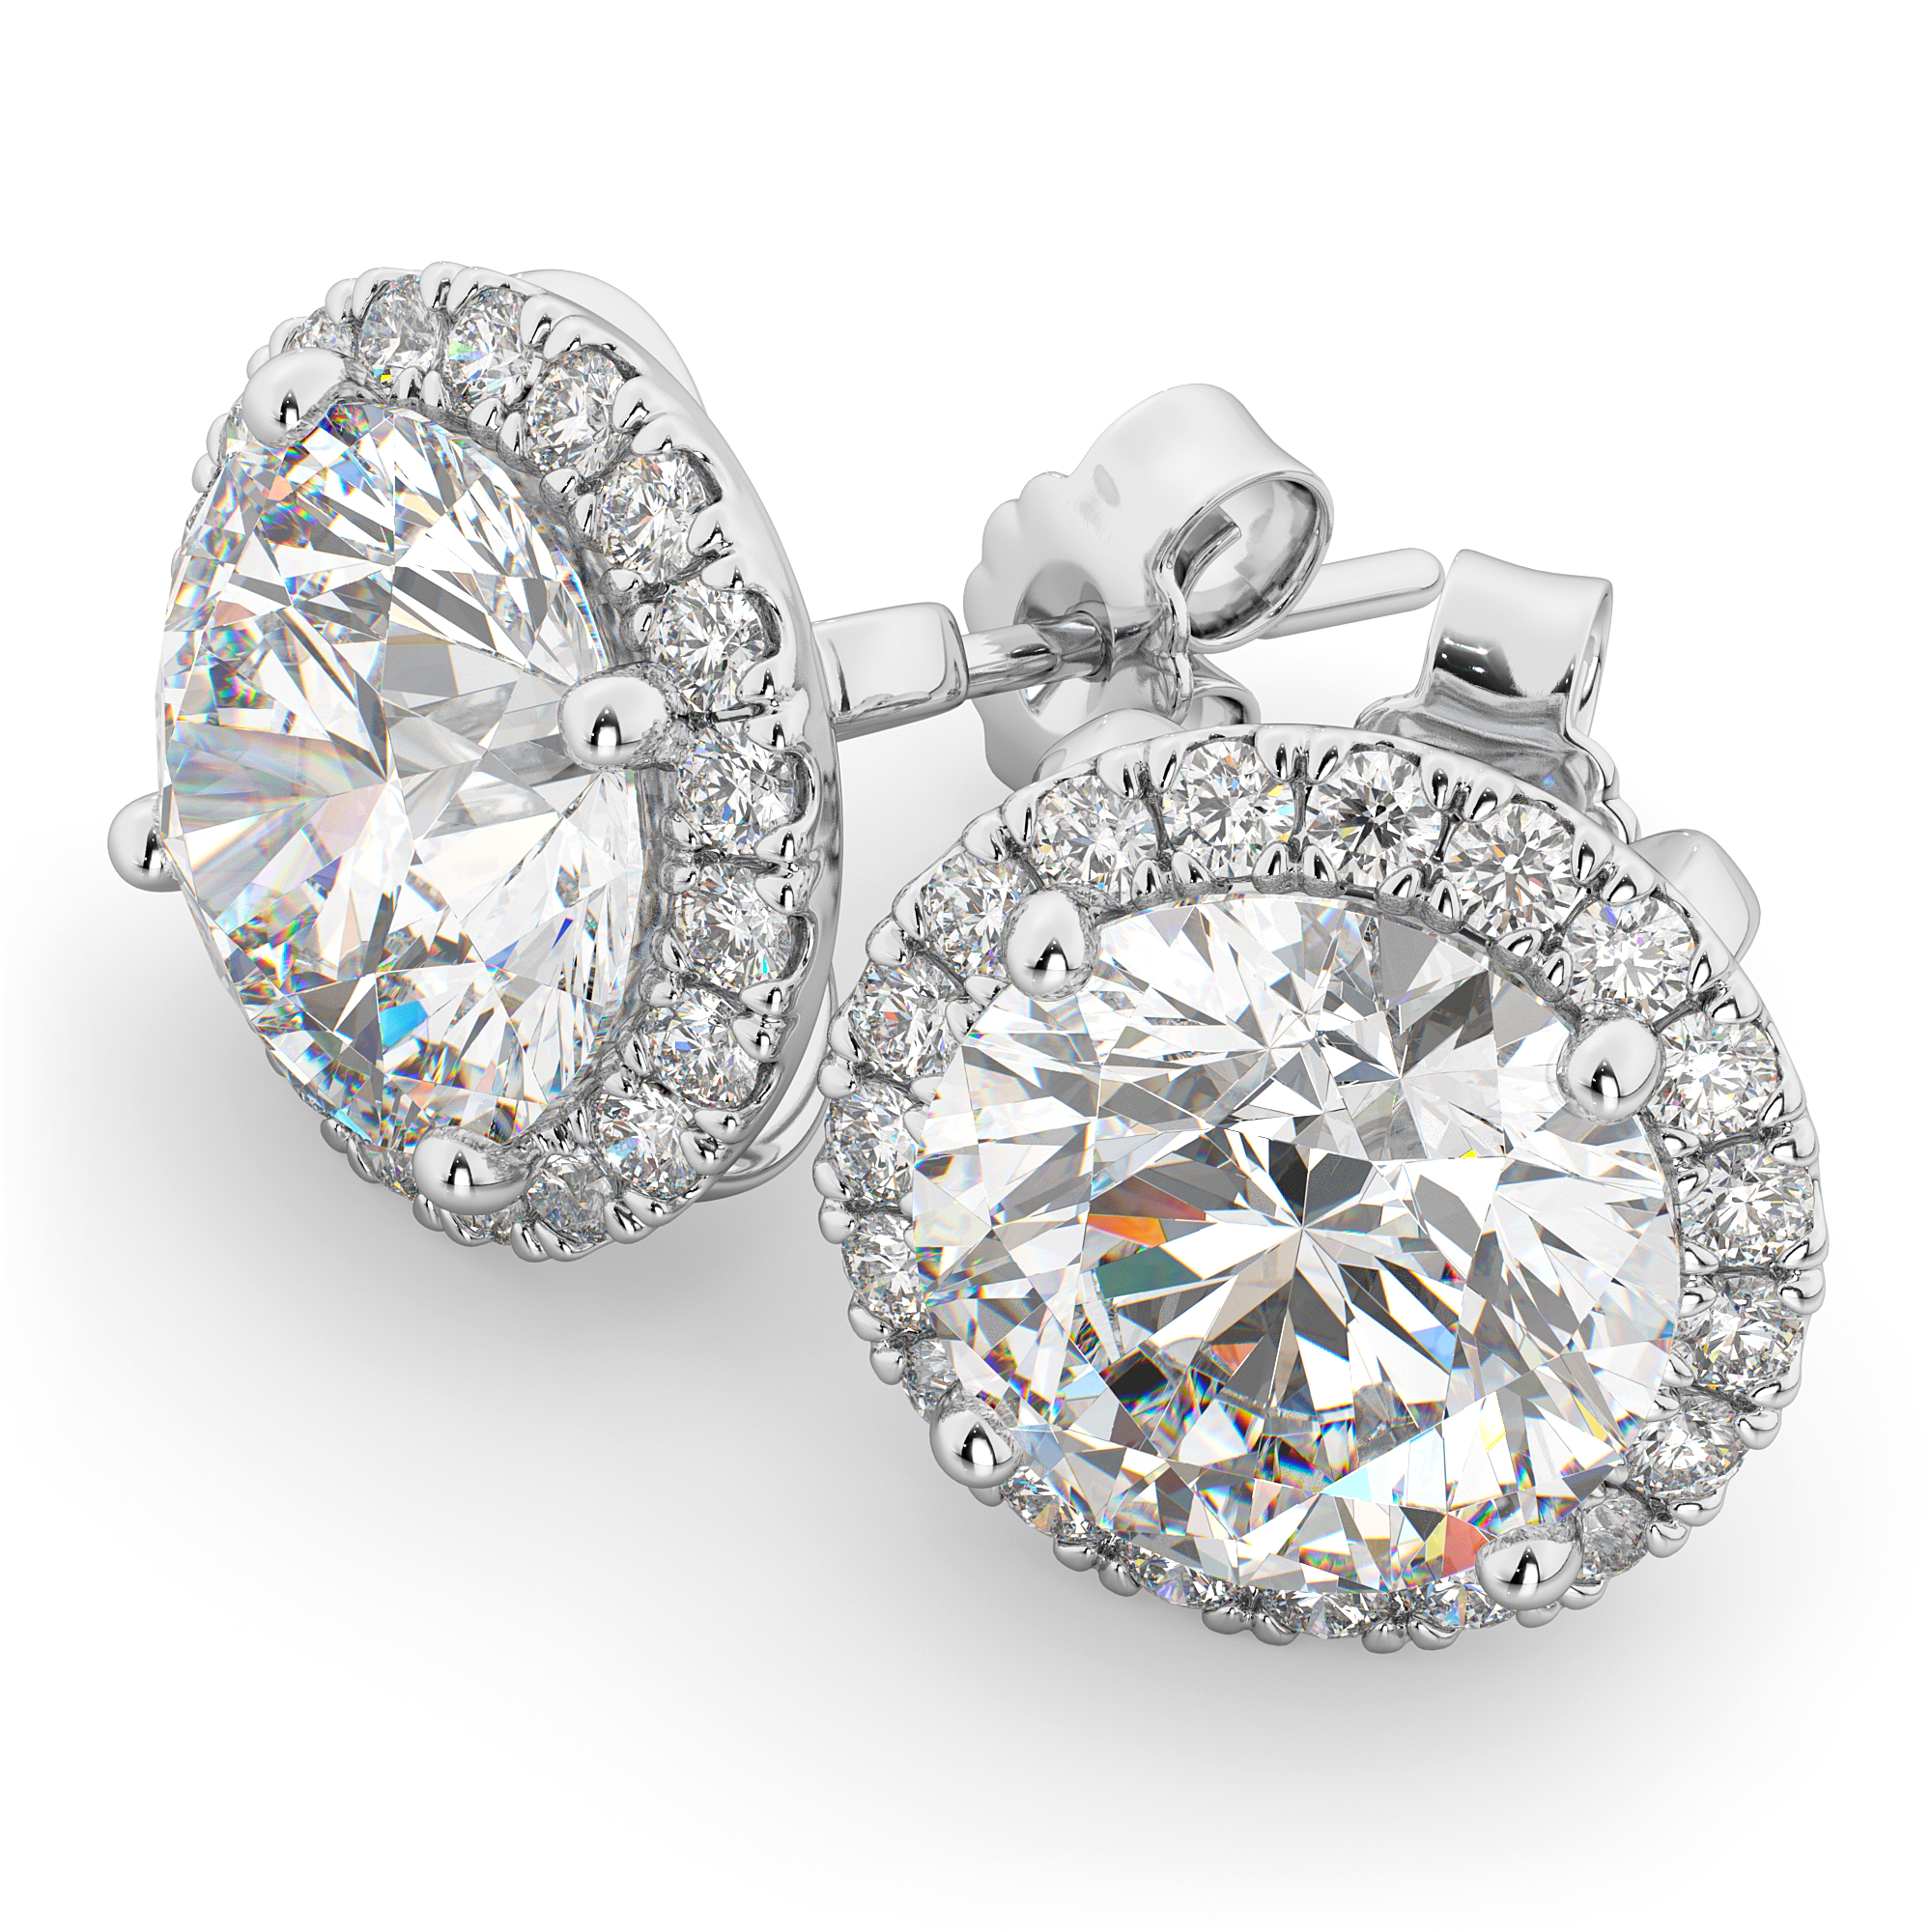 day colvard gift diamond poshclassymom stud valentines studs charles ideas and moissanite earrings